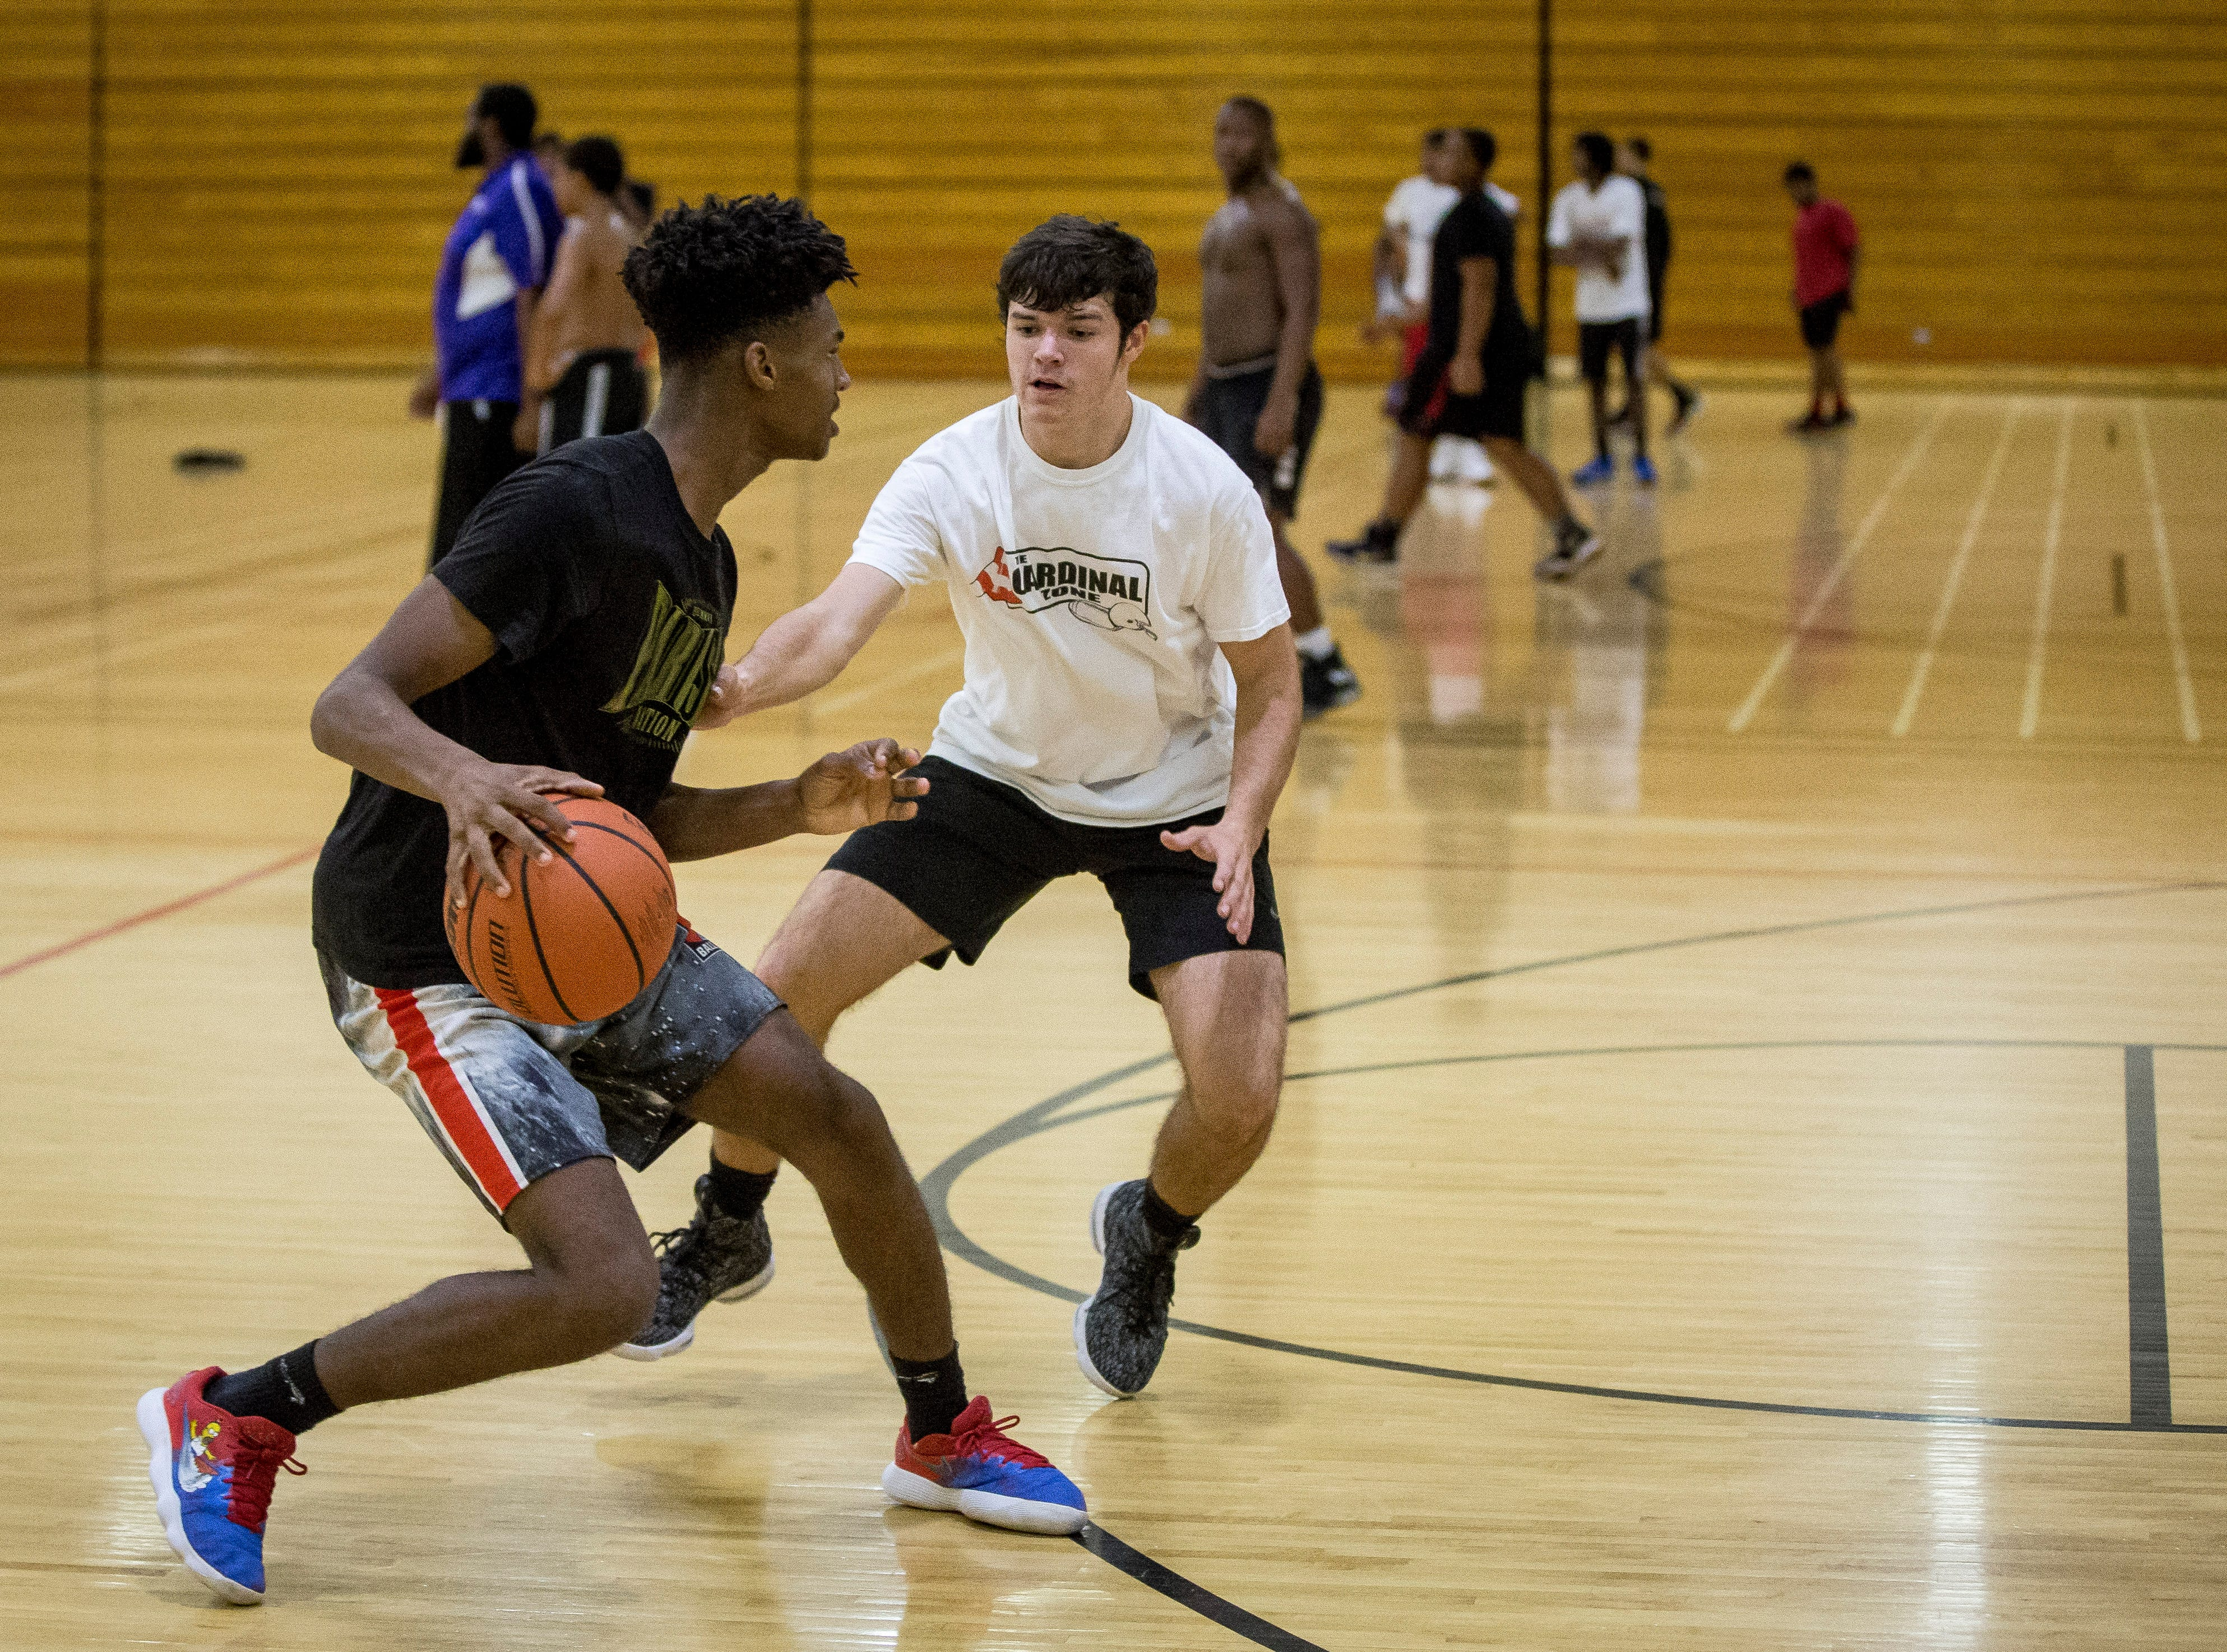 Central students hit the basketball courts Monday evening at Central High School for the basketball tryouts.